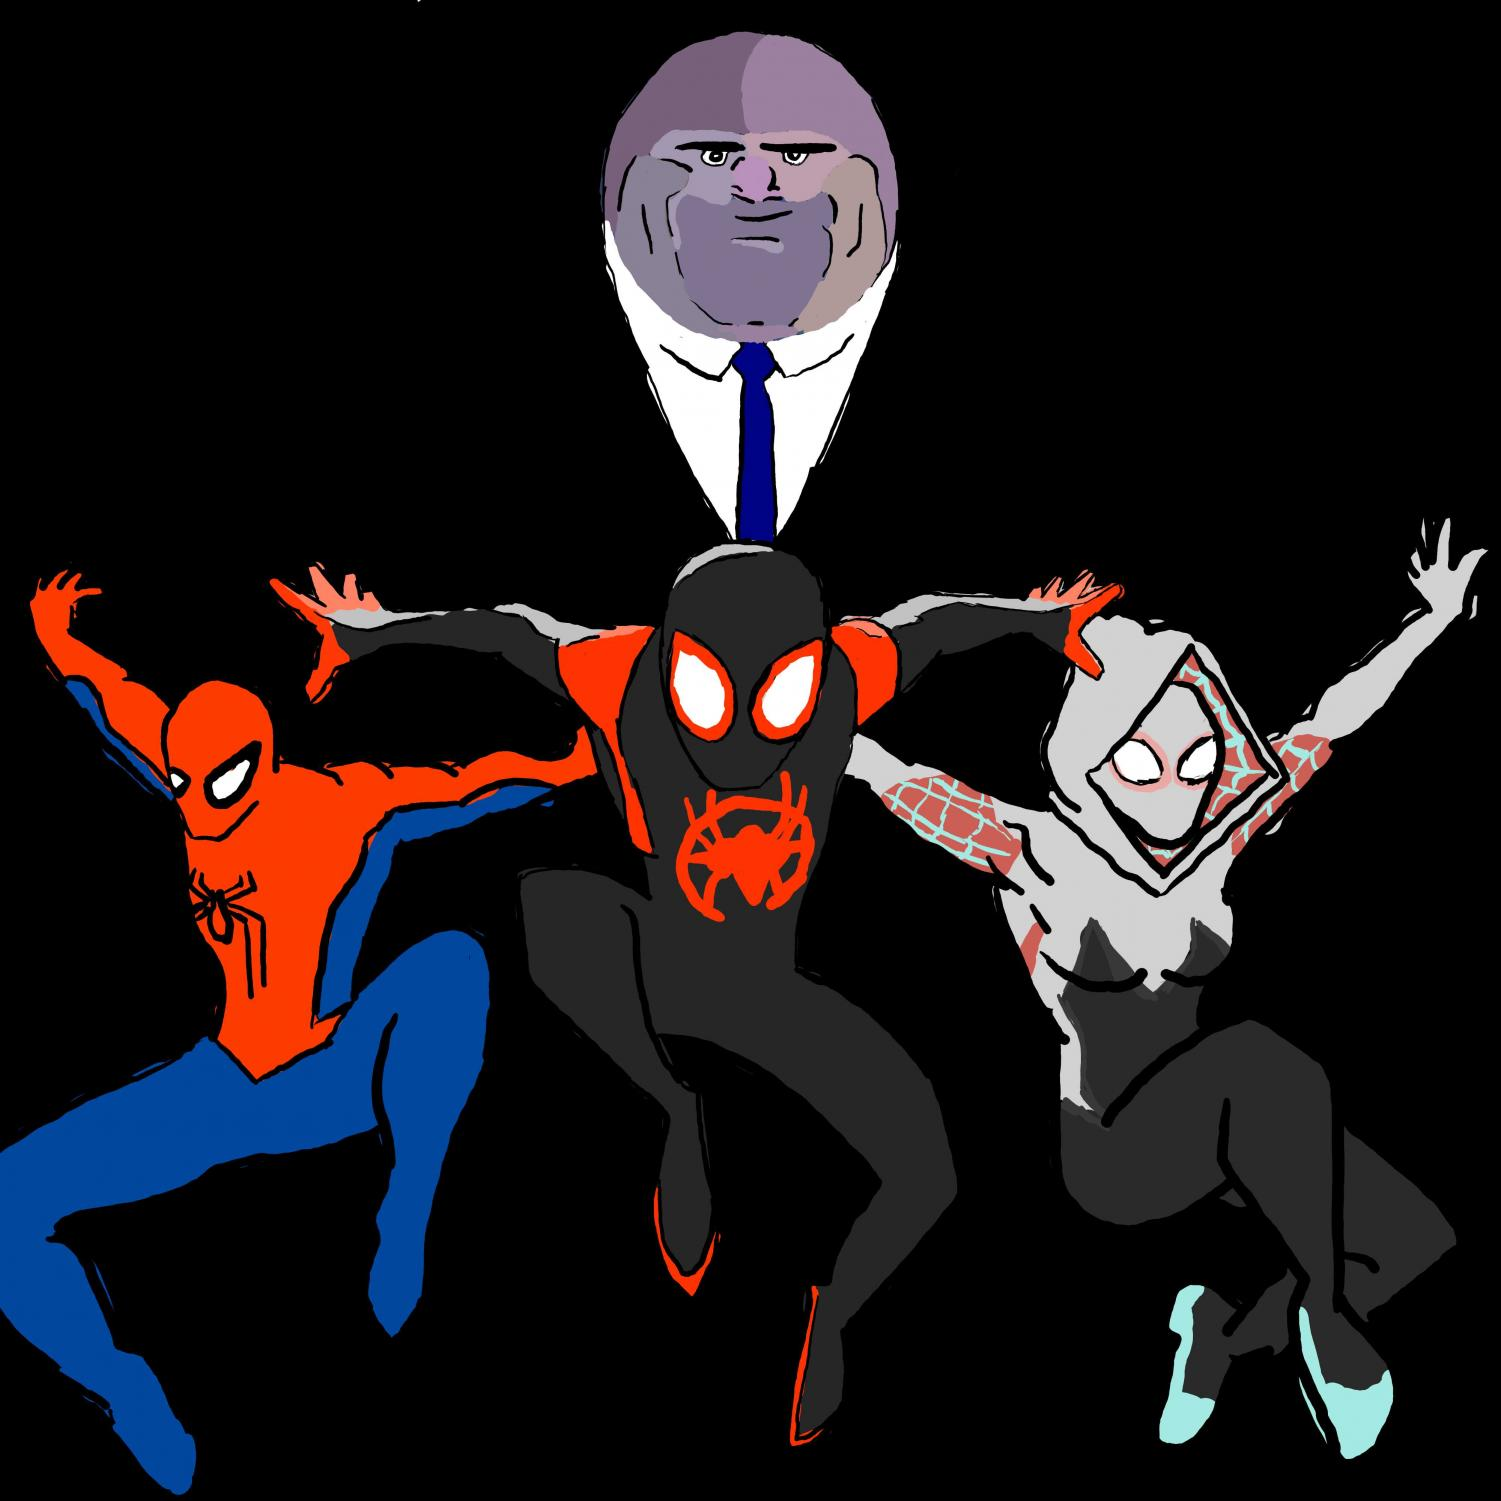 Kingpin the main antagonist and the main three spider-people featured in Spiderman: Into the Spider-Verse.